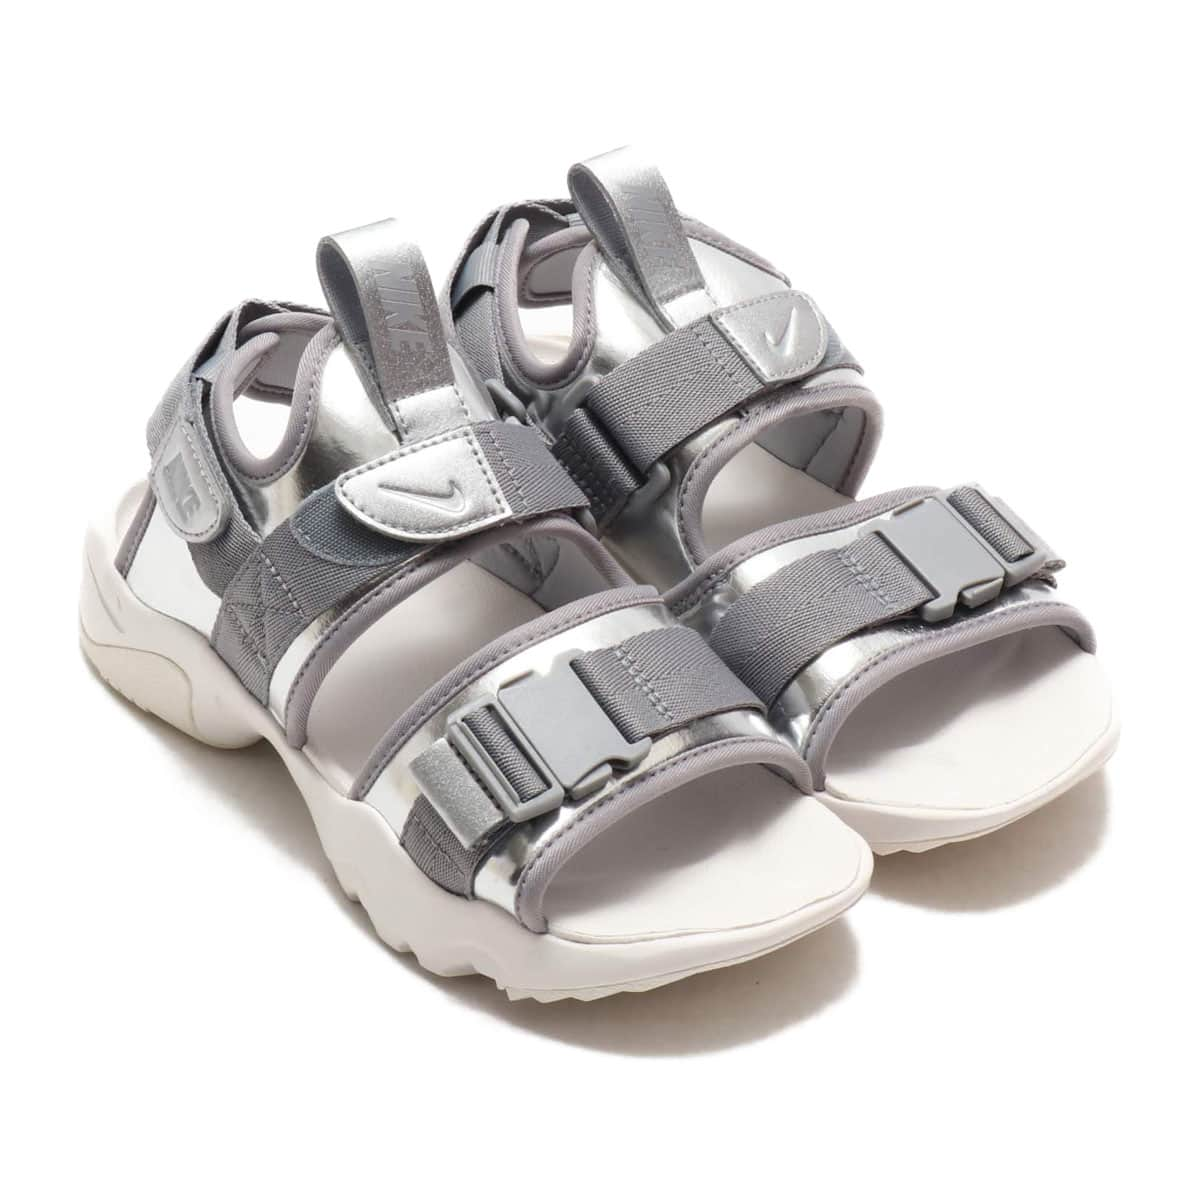 NIKE WMNS CANYON SANDAL METALLIC SILVER/PARTICLE GREY 20SU-S_photo_large